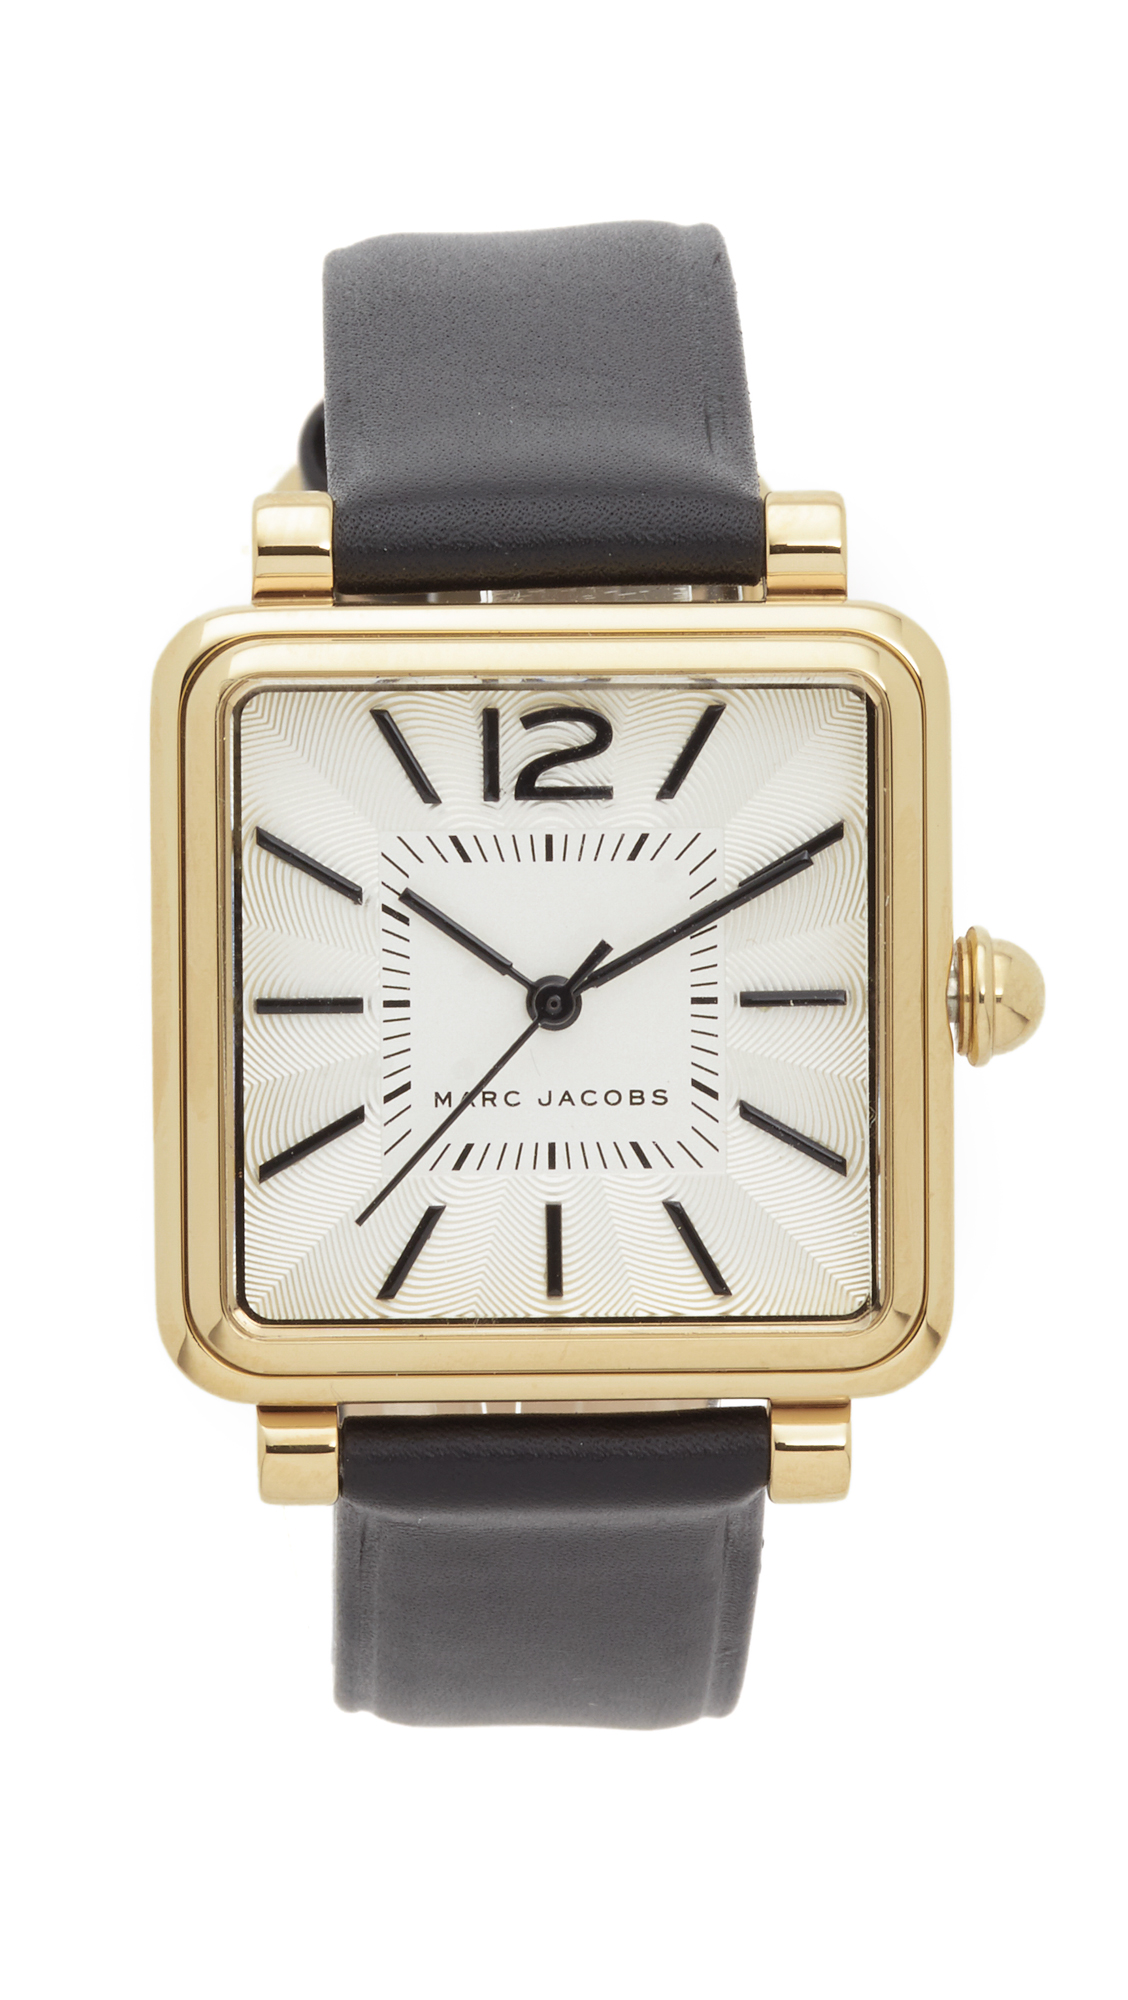 Marc Jacobs Vic Watch - Gold/Black